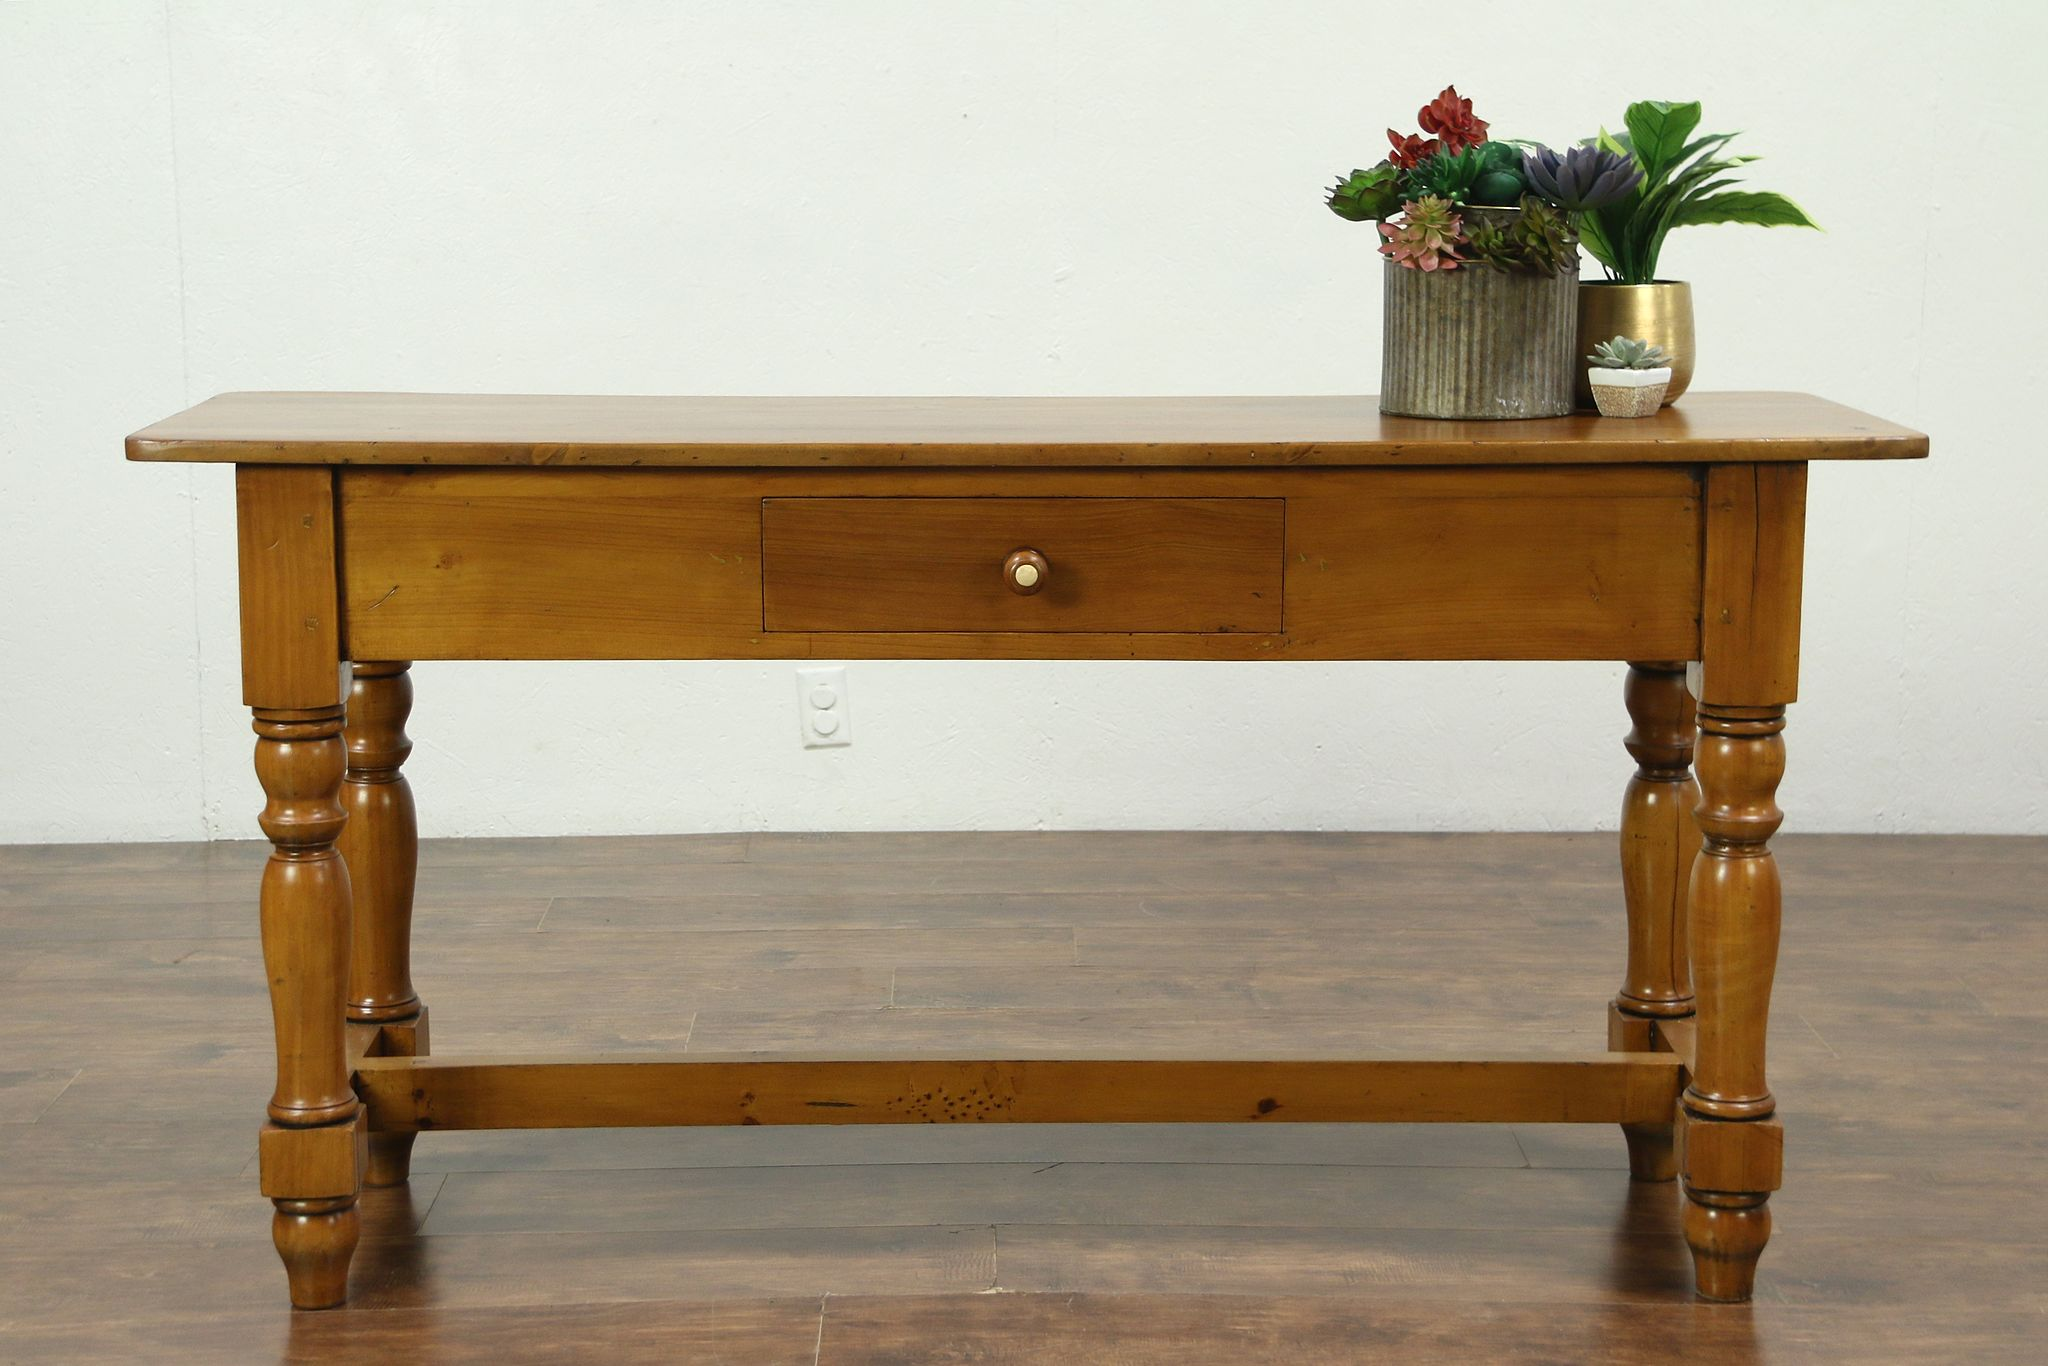 Vintage Hall Table Country Pine Vintage Sideboard Sofa Or Hall Table Tv Console